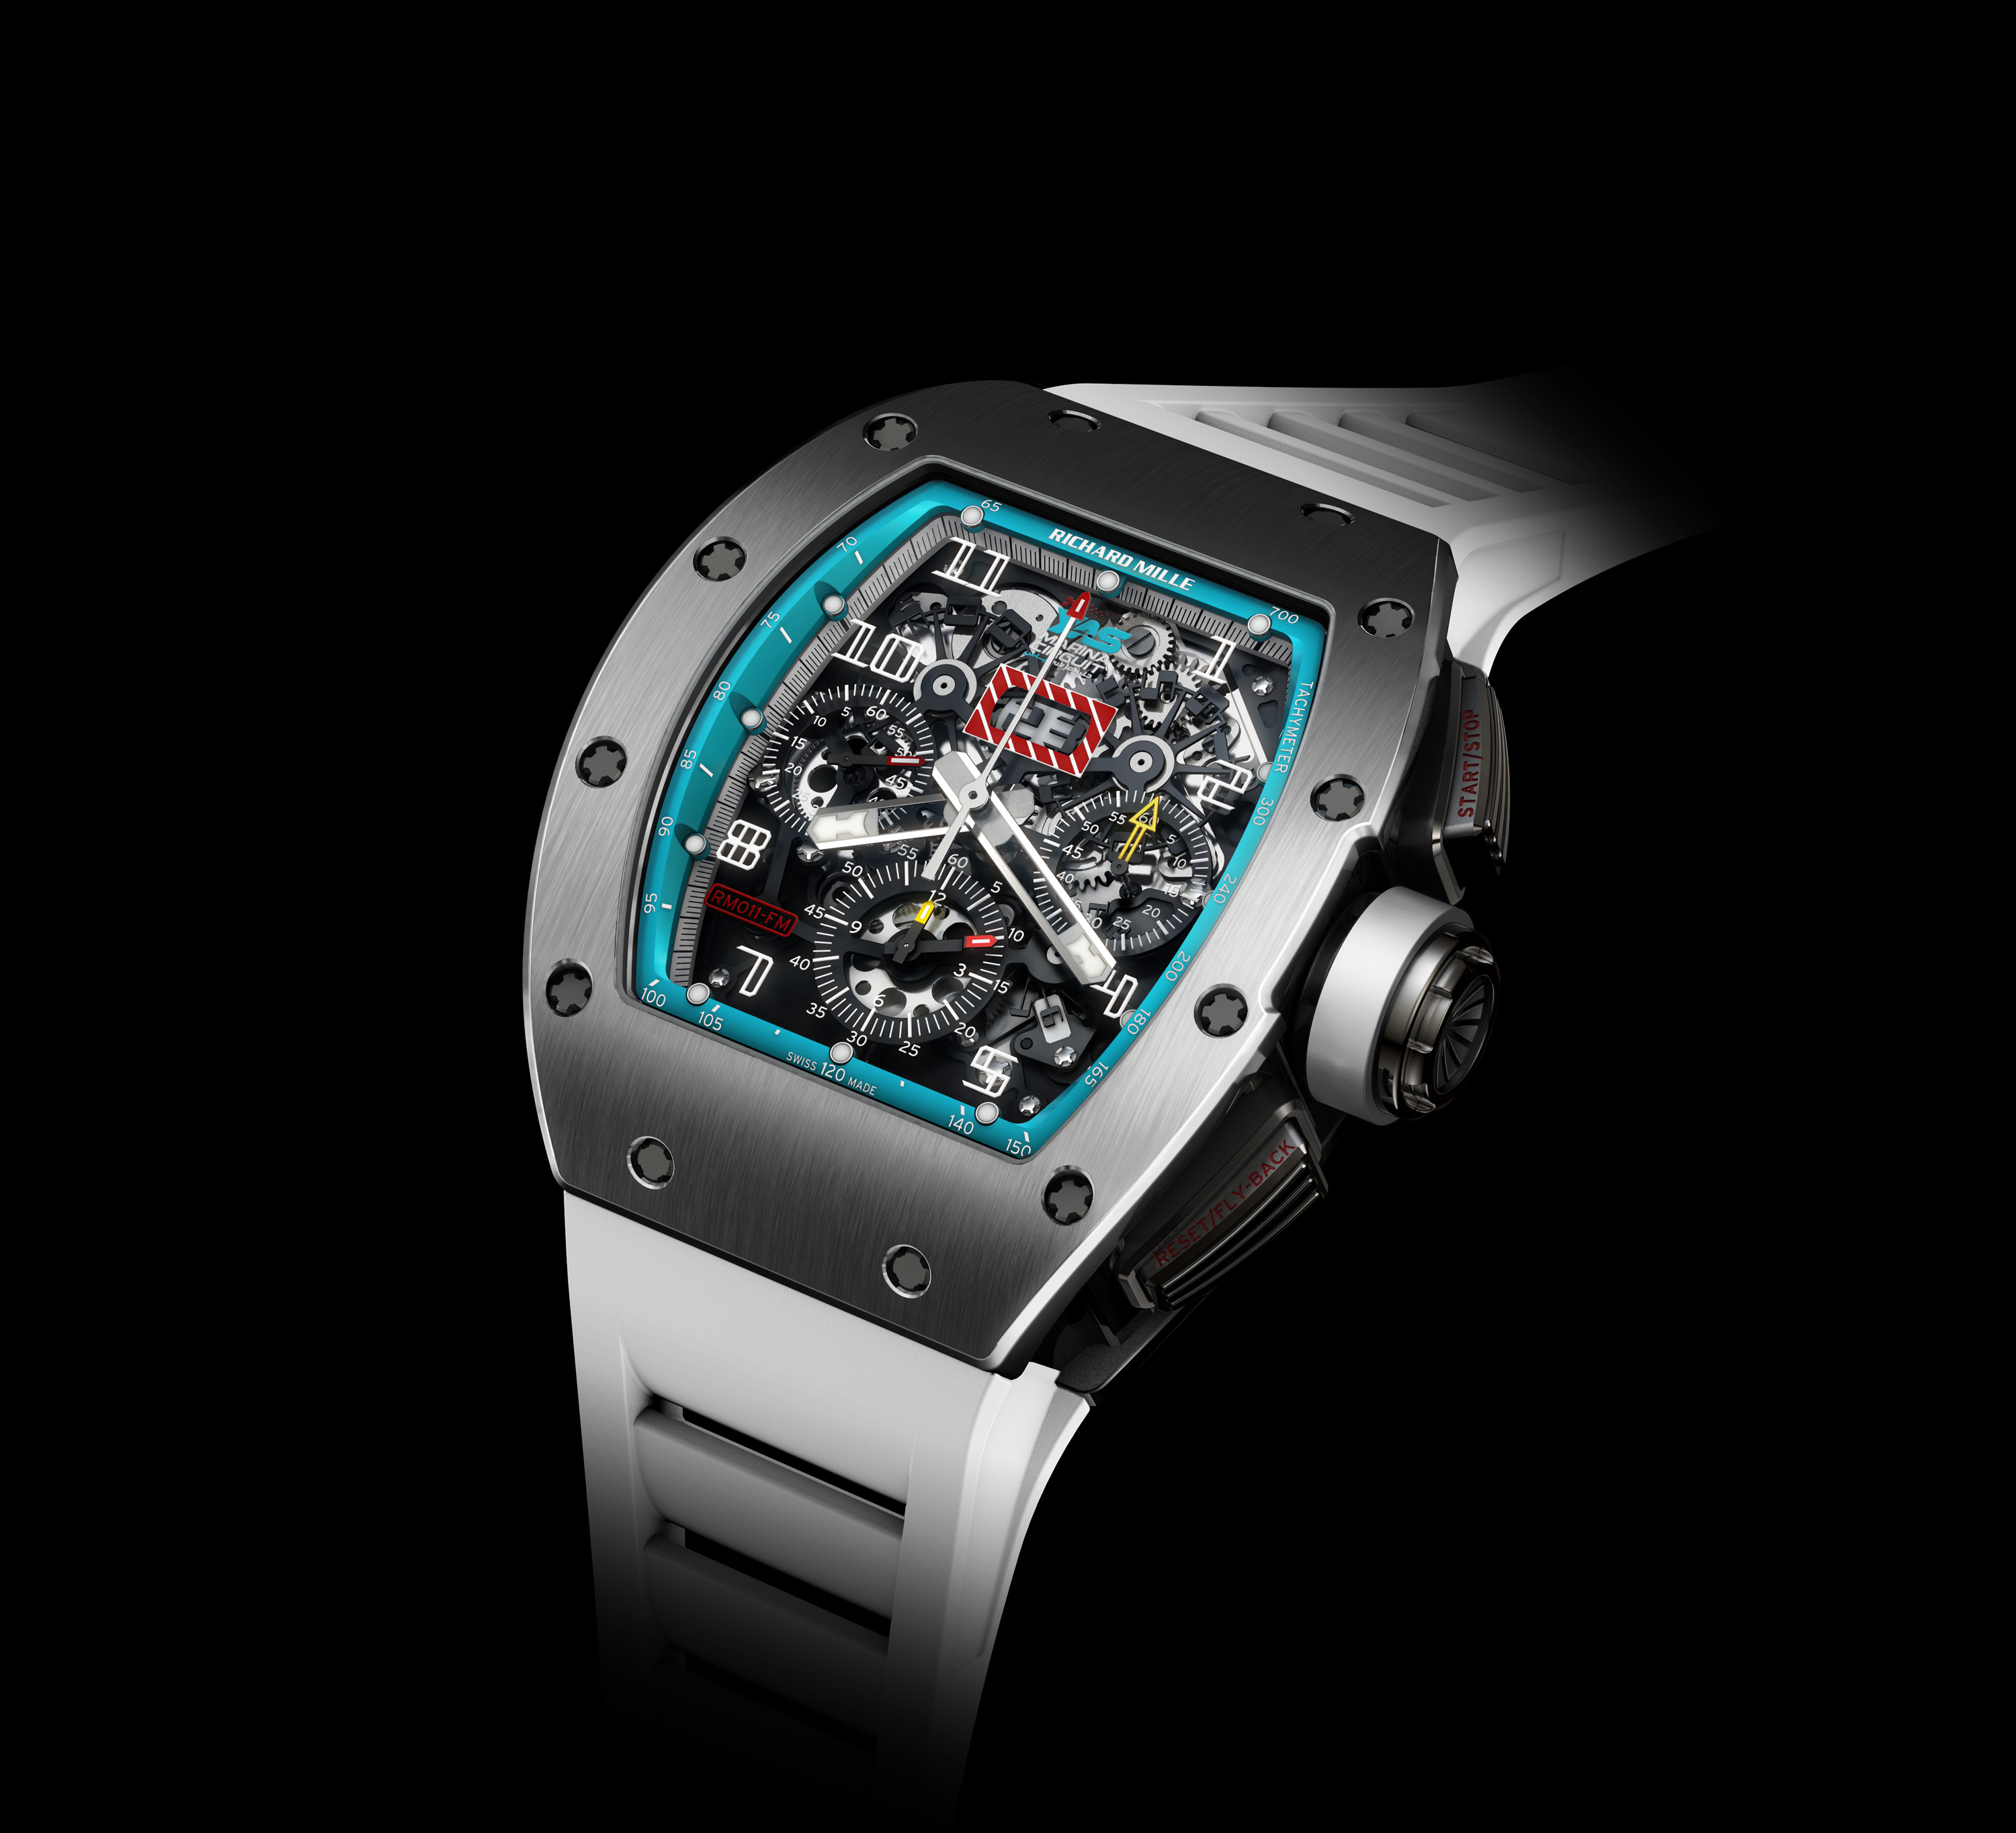 Replica Richard Mille RM011 Yas Marina Circuit Limited Edition Watch